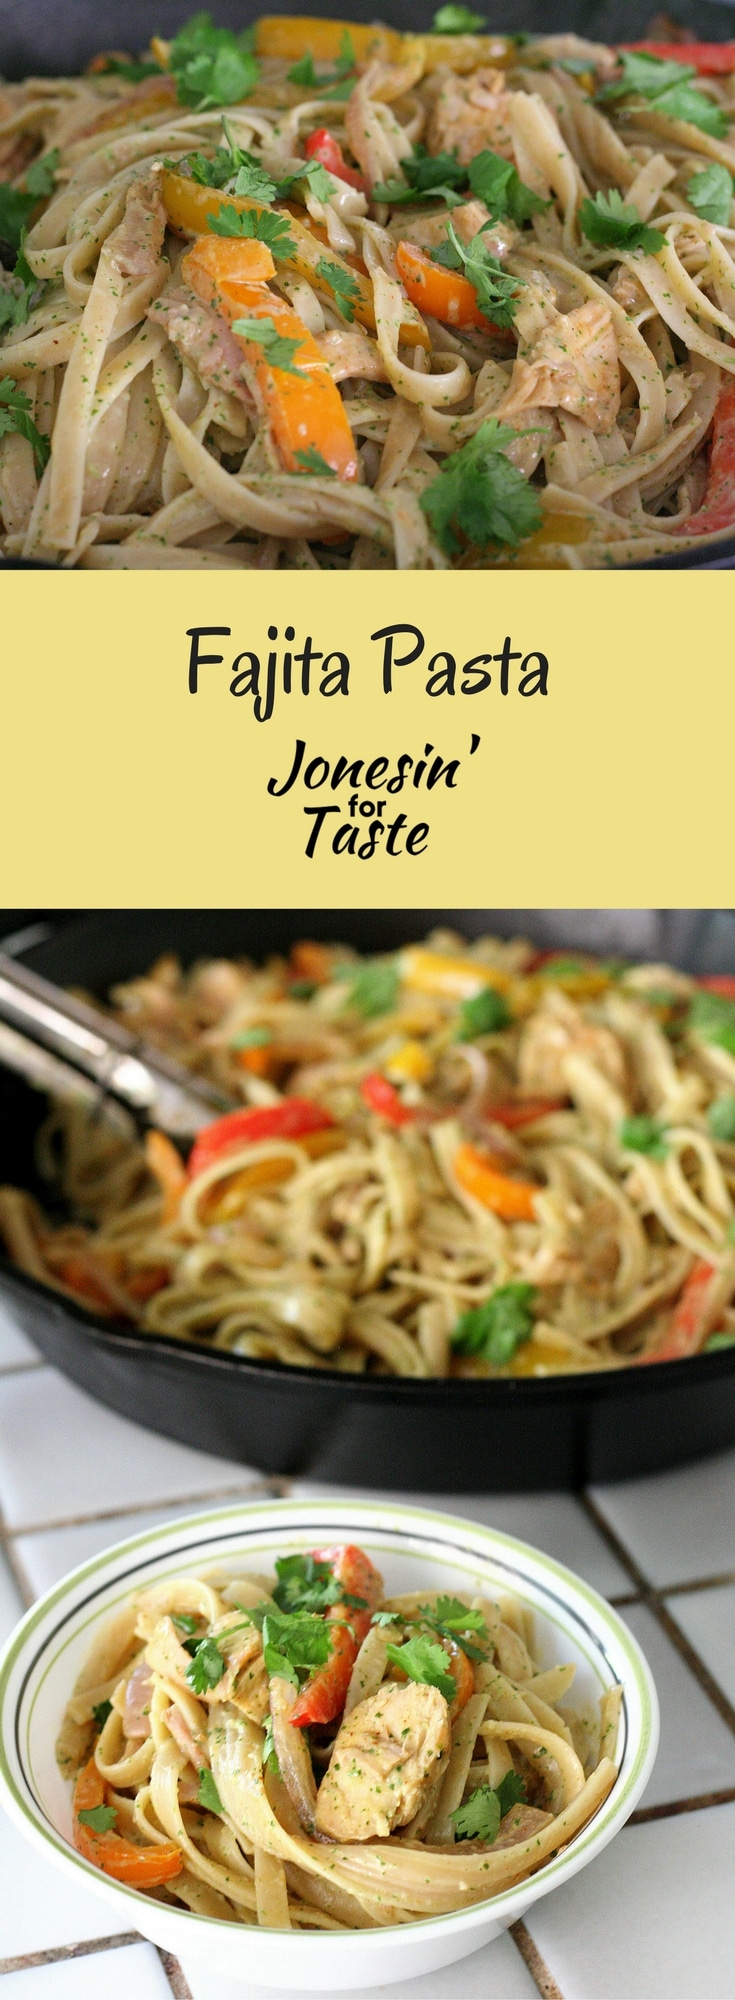 Chicken Fajita Pasta with Cilantro Lime Sauce is an easy 30 minute meal similar to California Pizza Kitchen's Chicken Tequila Fettuccine.